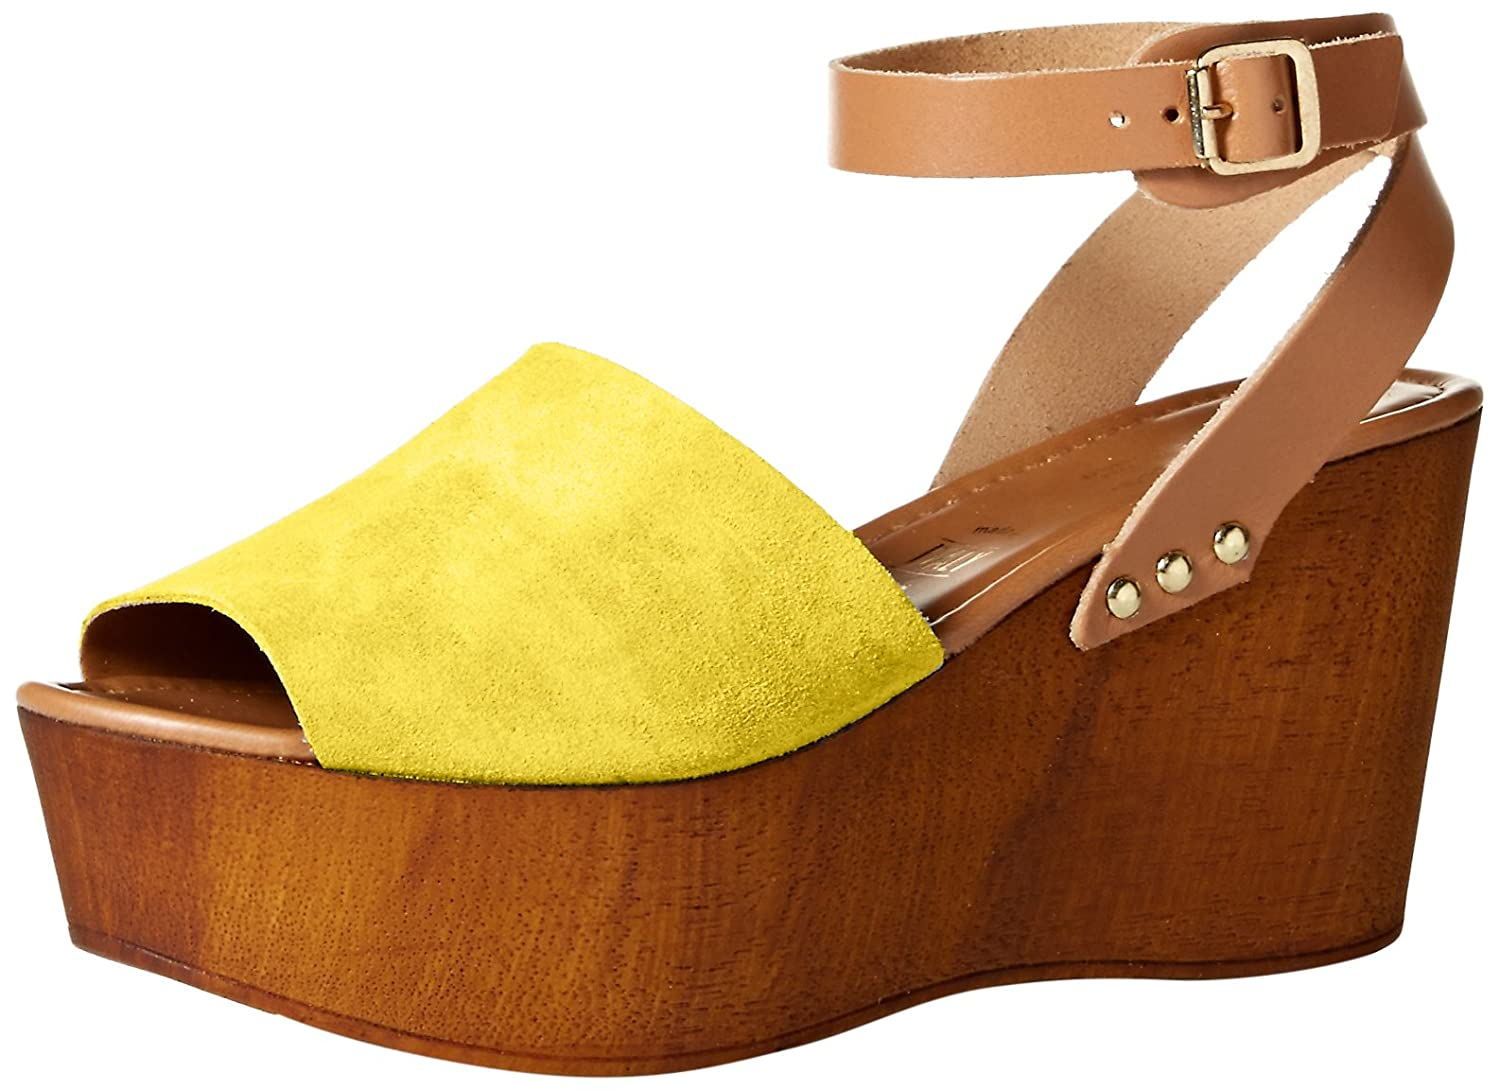 Seychelles Women's Forward Wedge Pump B0756LNLK3 9.5 B(M) US|Yellow